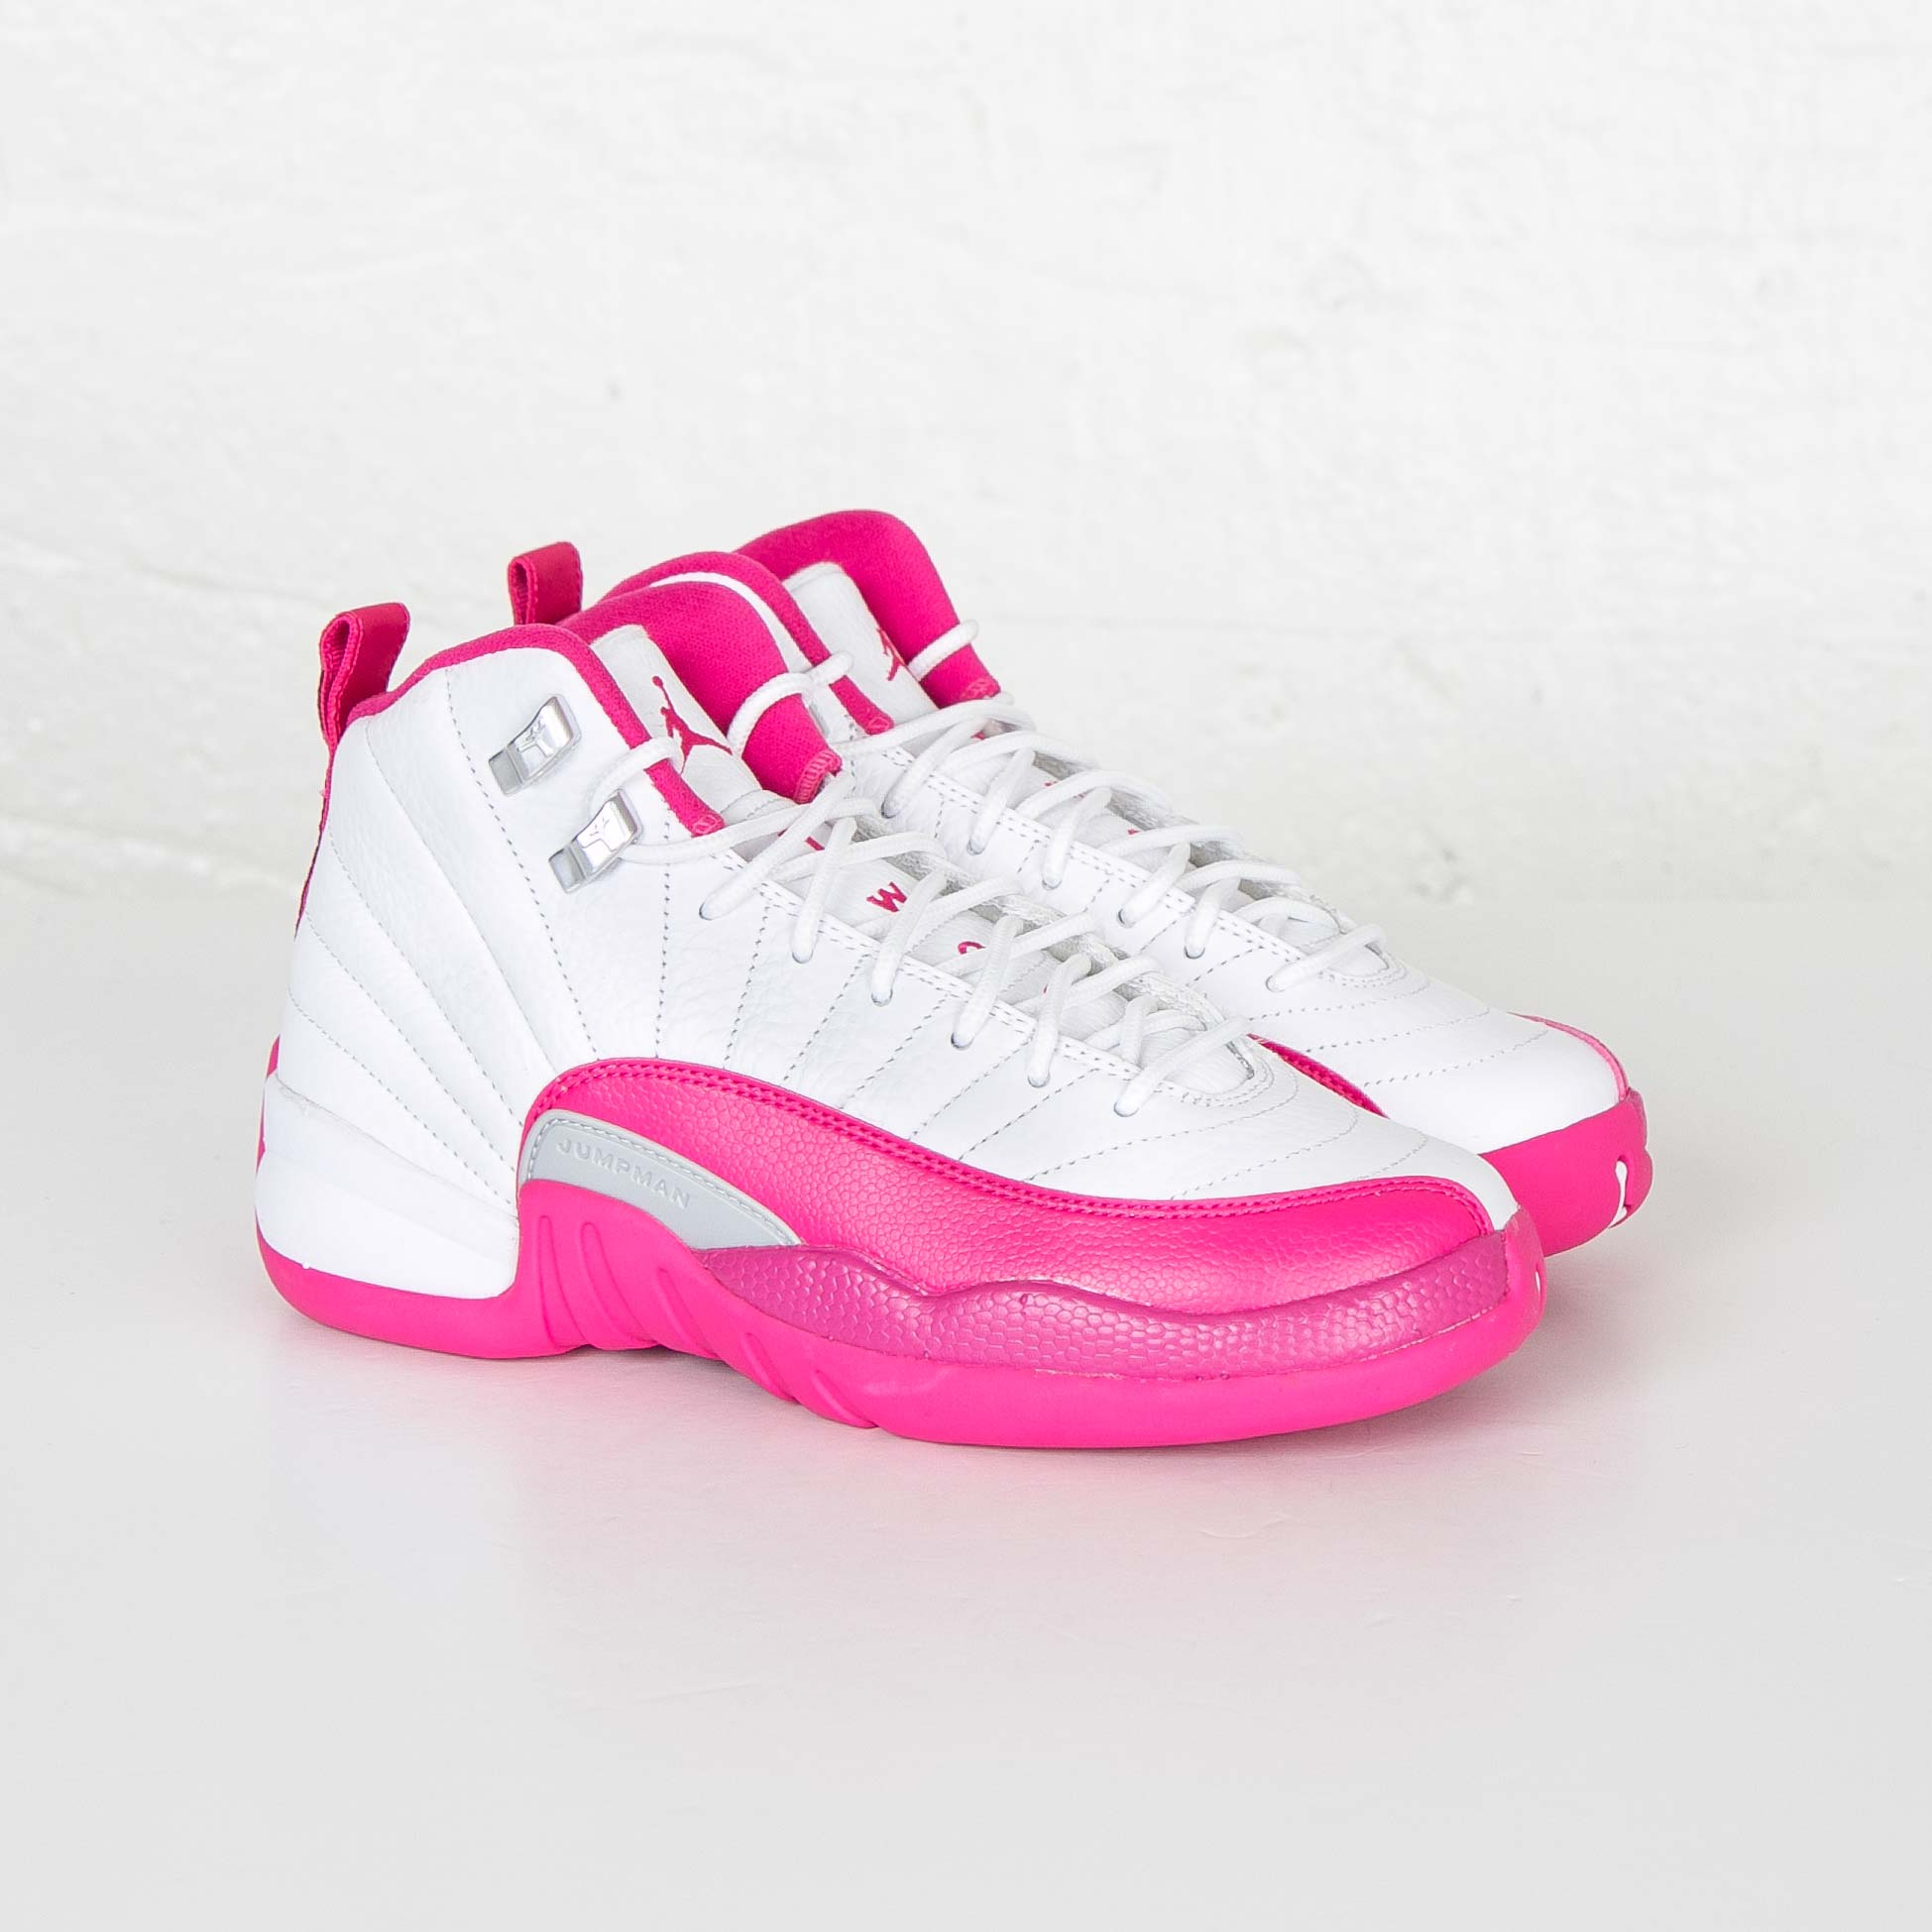 869d4f3e28b ... White Vivid Pink Metallic Silver Basketball Shoes Jordan Brand Air  Jordan 12 Retro (GS) ...